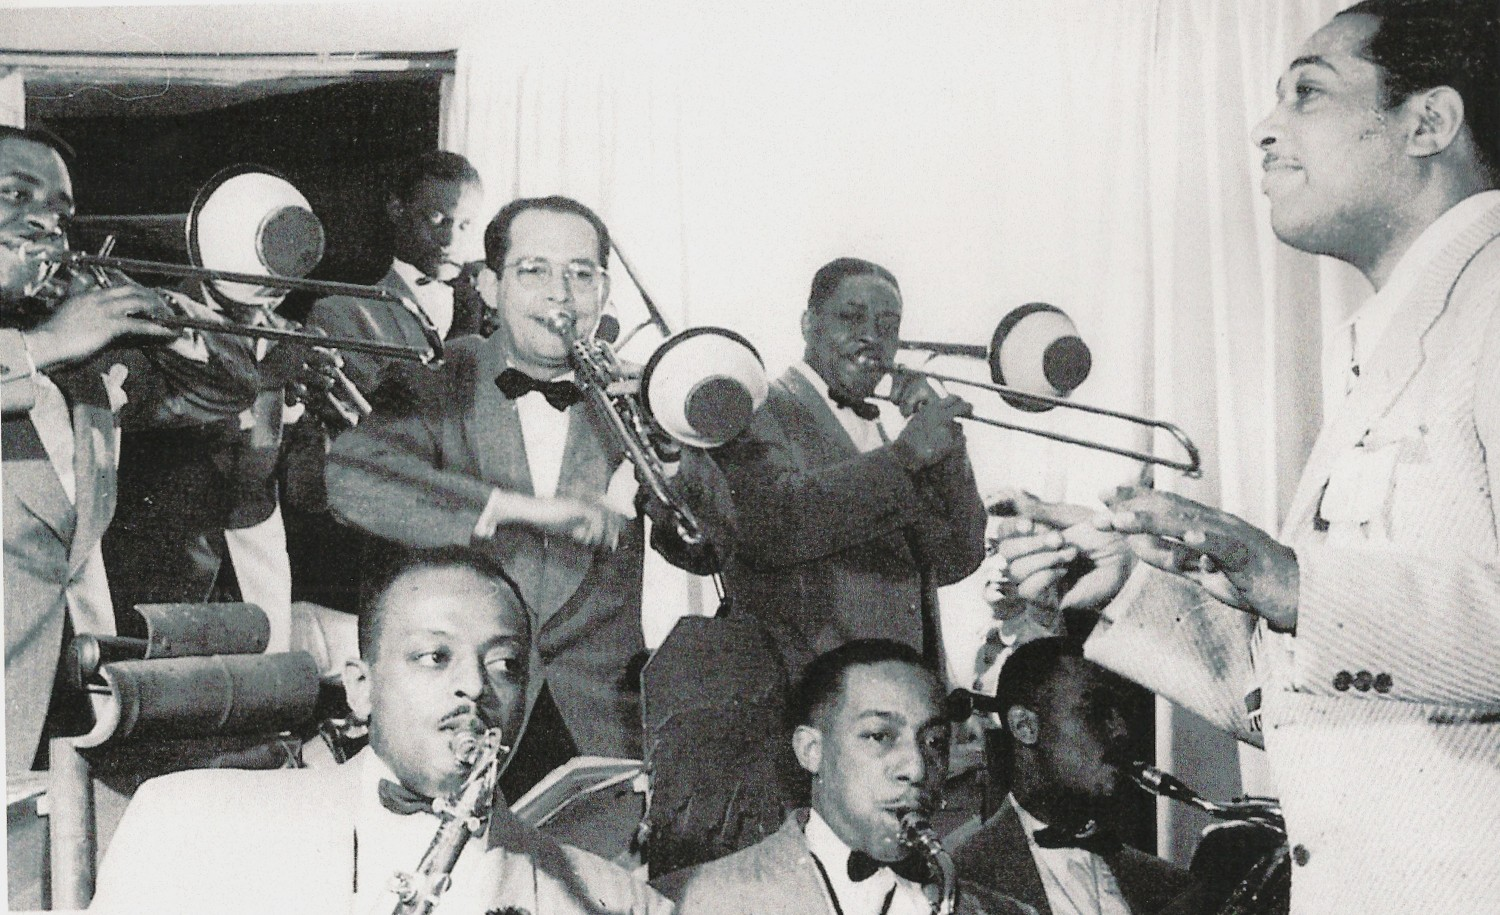 p. 196, Duke et une partie de son orchestre en 1943 : Joe Nanton, Juan Tizol, Sandy Williams (tb), Ben Webster, Johnny Hodges, Jimmy Hamilton (reeds), X, Coll. Claude Carrière